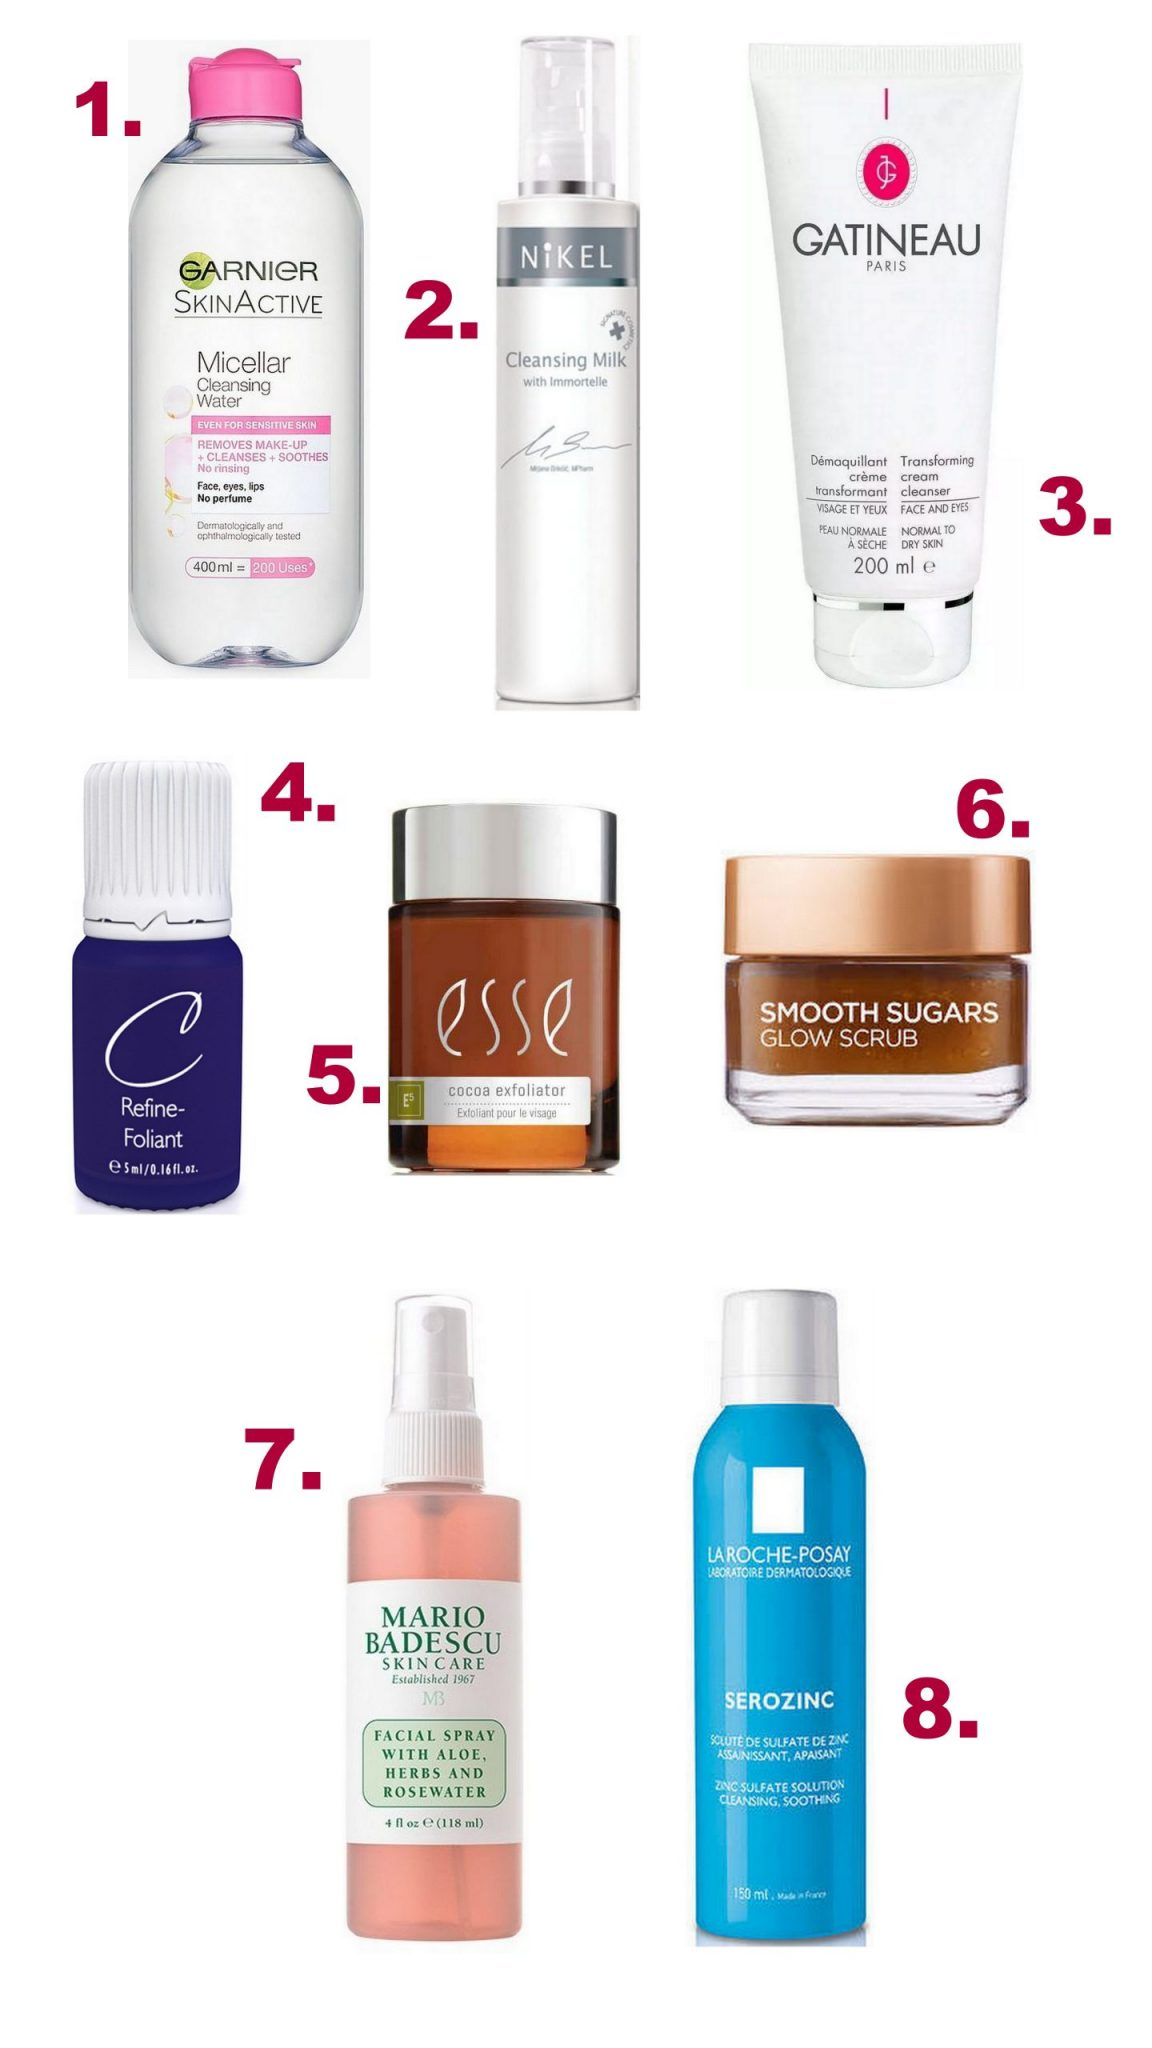 BEST OF SKINCARE scaled